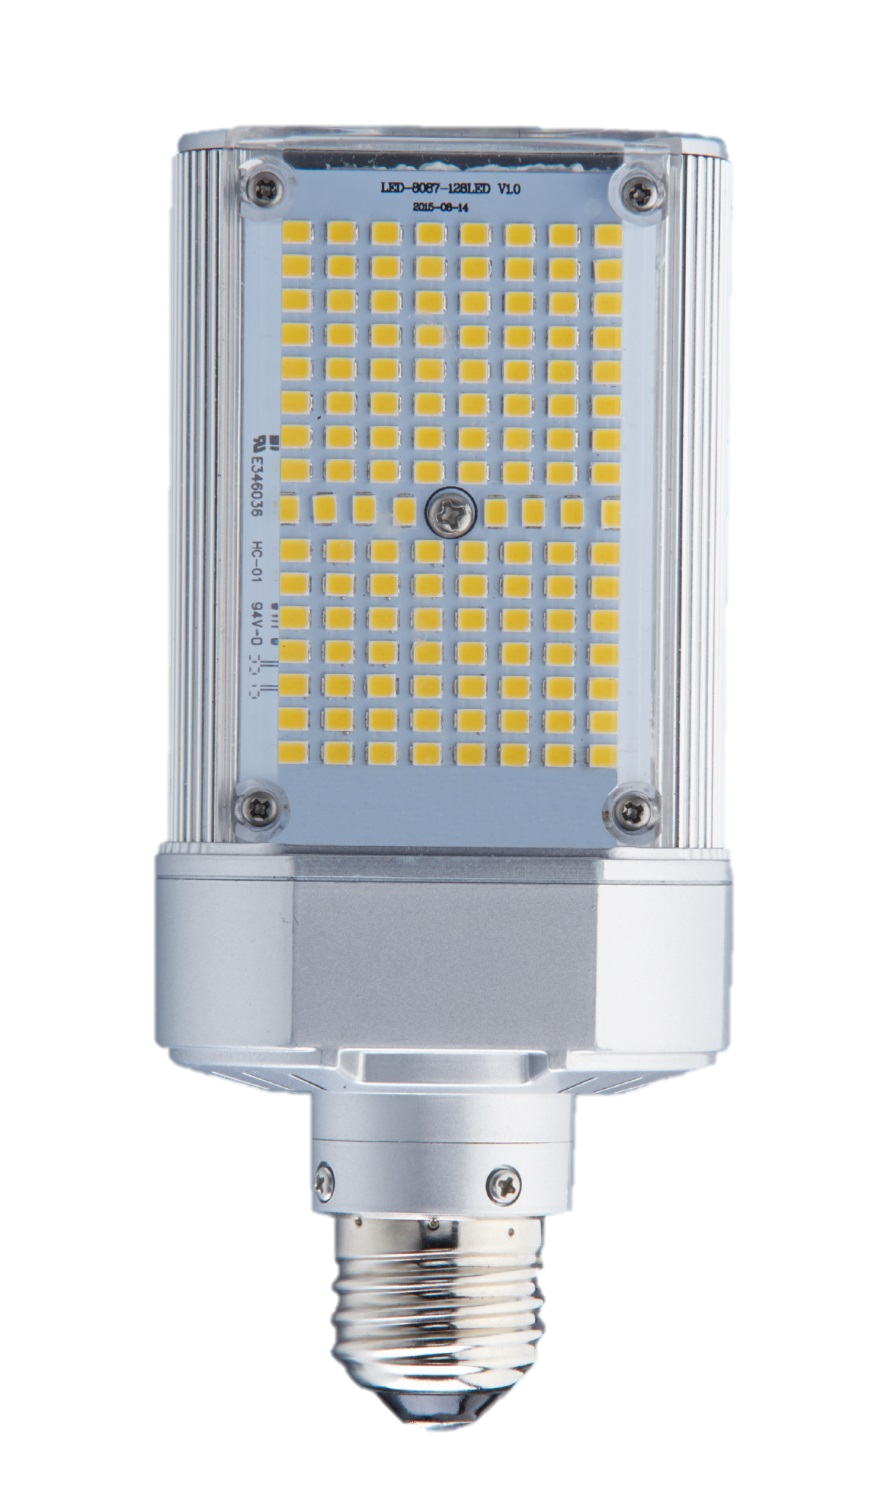 30W SHOE BOX/WALL PACK RETROFIT , REPLACES UP TO 100W HID, E39, 5700K E39 REPLACES UP TO 100W HID 120-277V